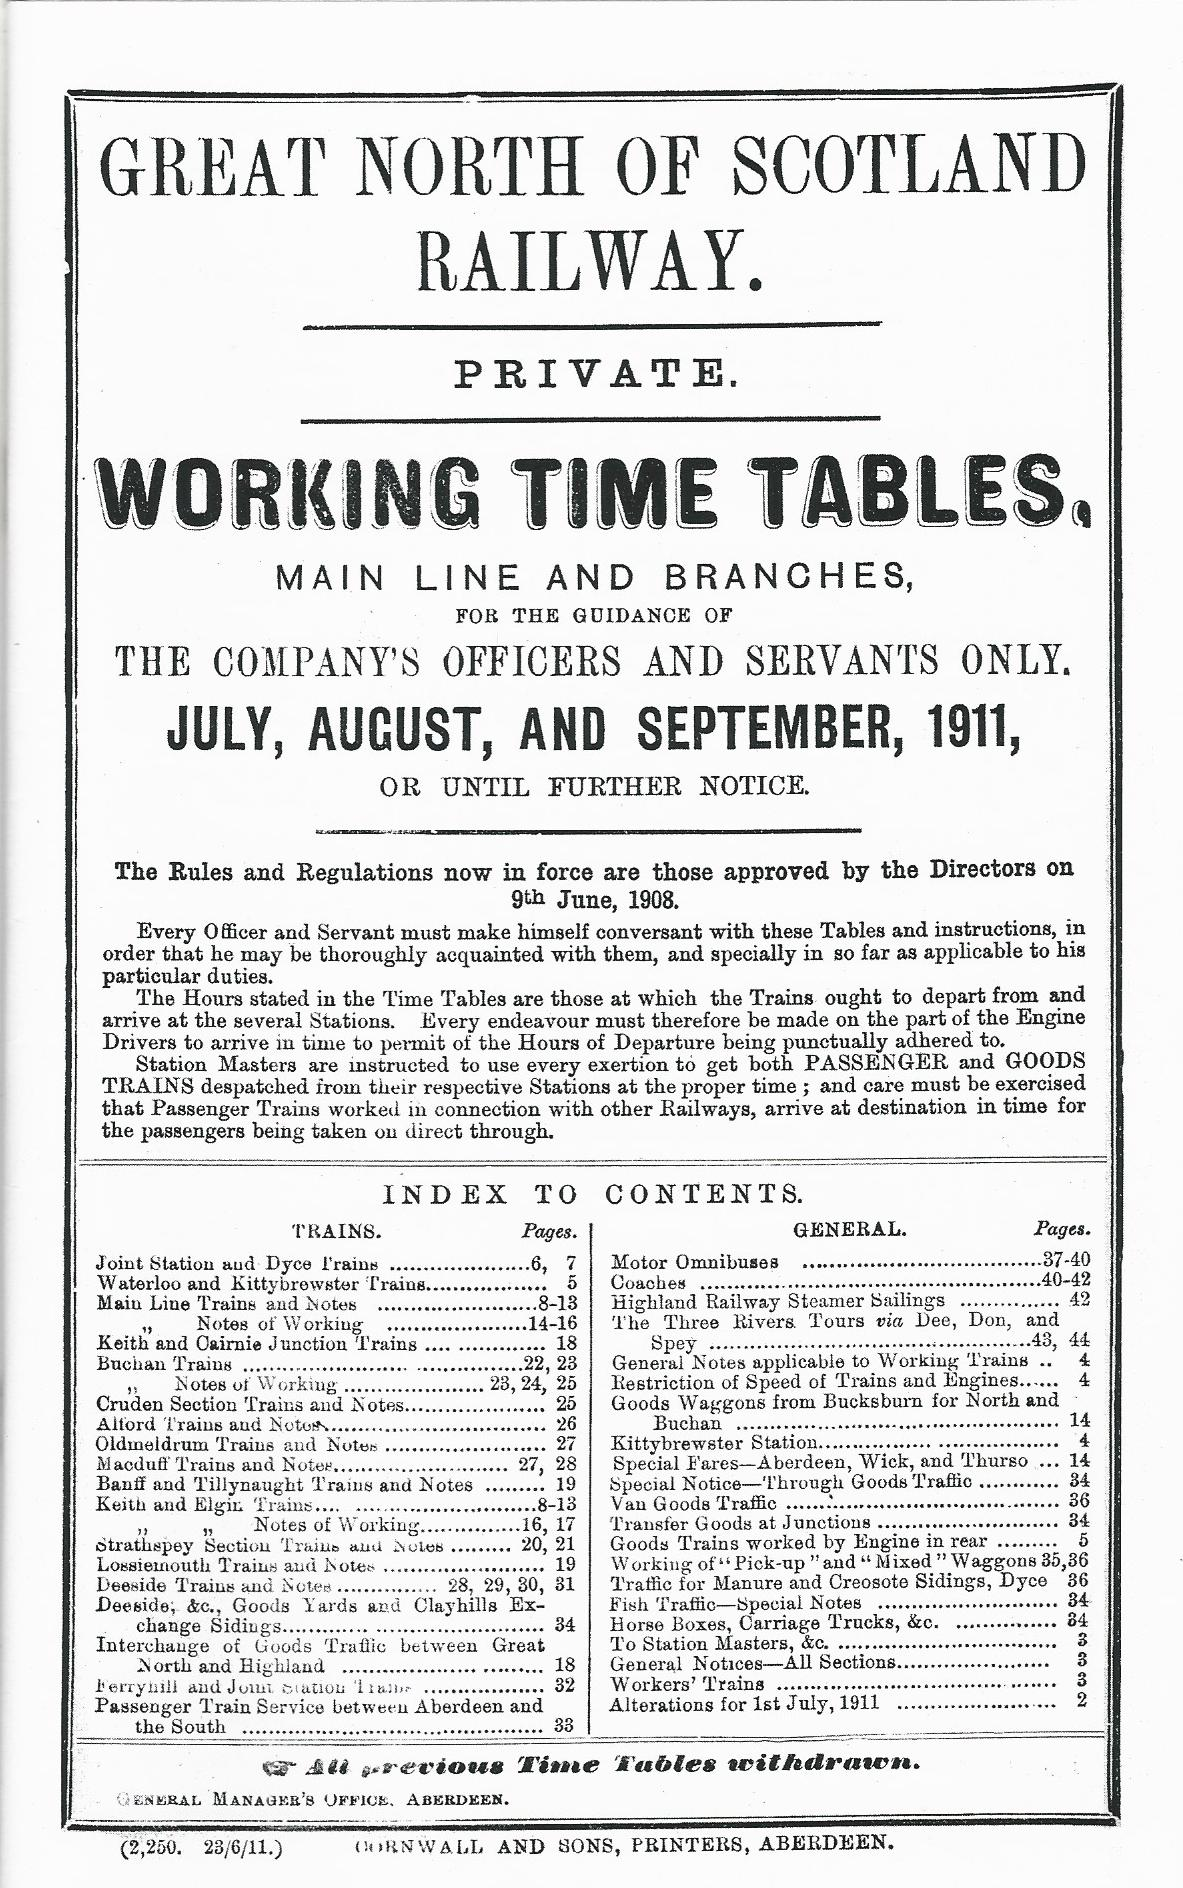 Image for Great North of Scotland Railway - Replica 1911 Working Time Table